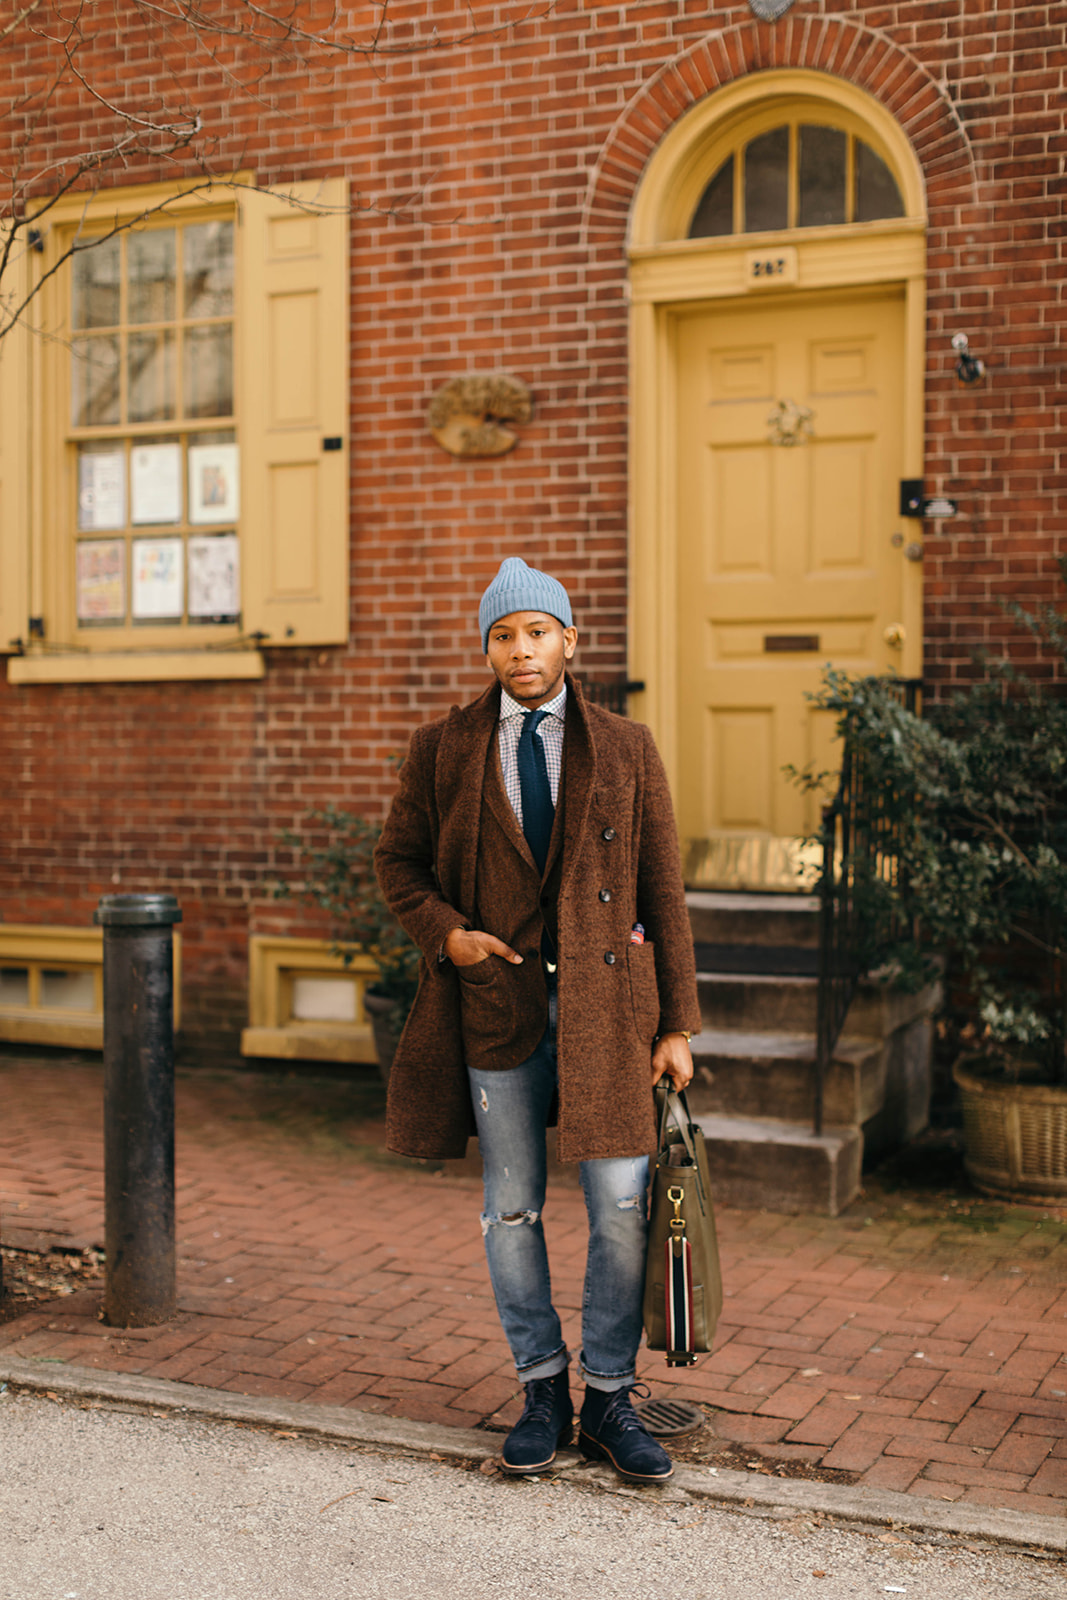 Sabir M. Peele in 0909 Italia Brown double breasted topcoat via ModaMatters & Thursday Boot Co Suede Boots